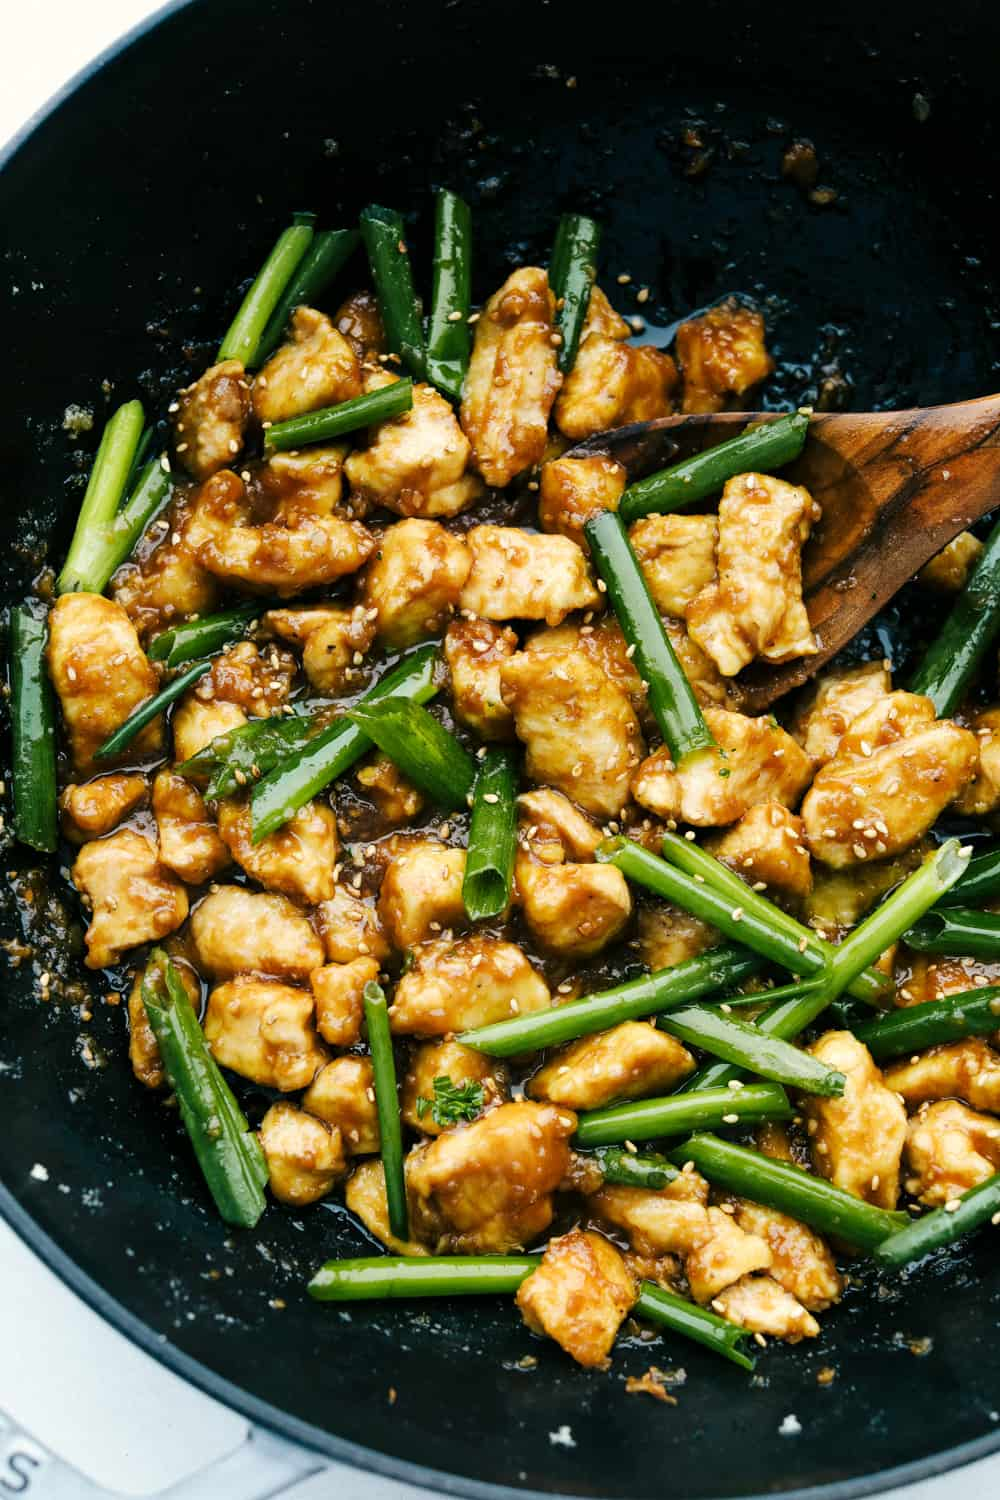 Chicken and green onions sauteed in a wok.